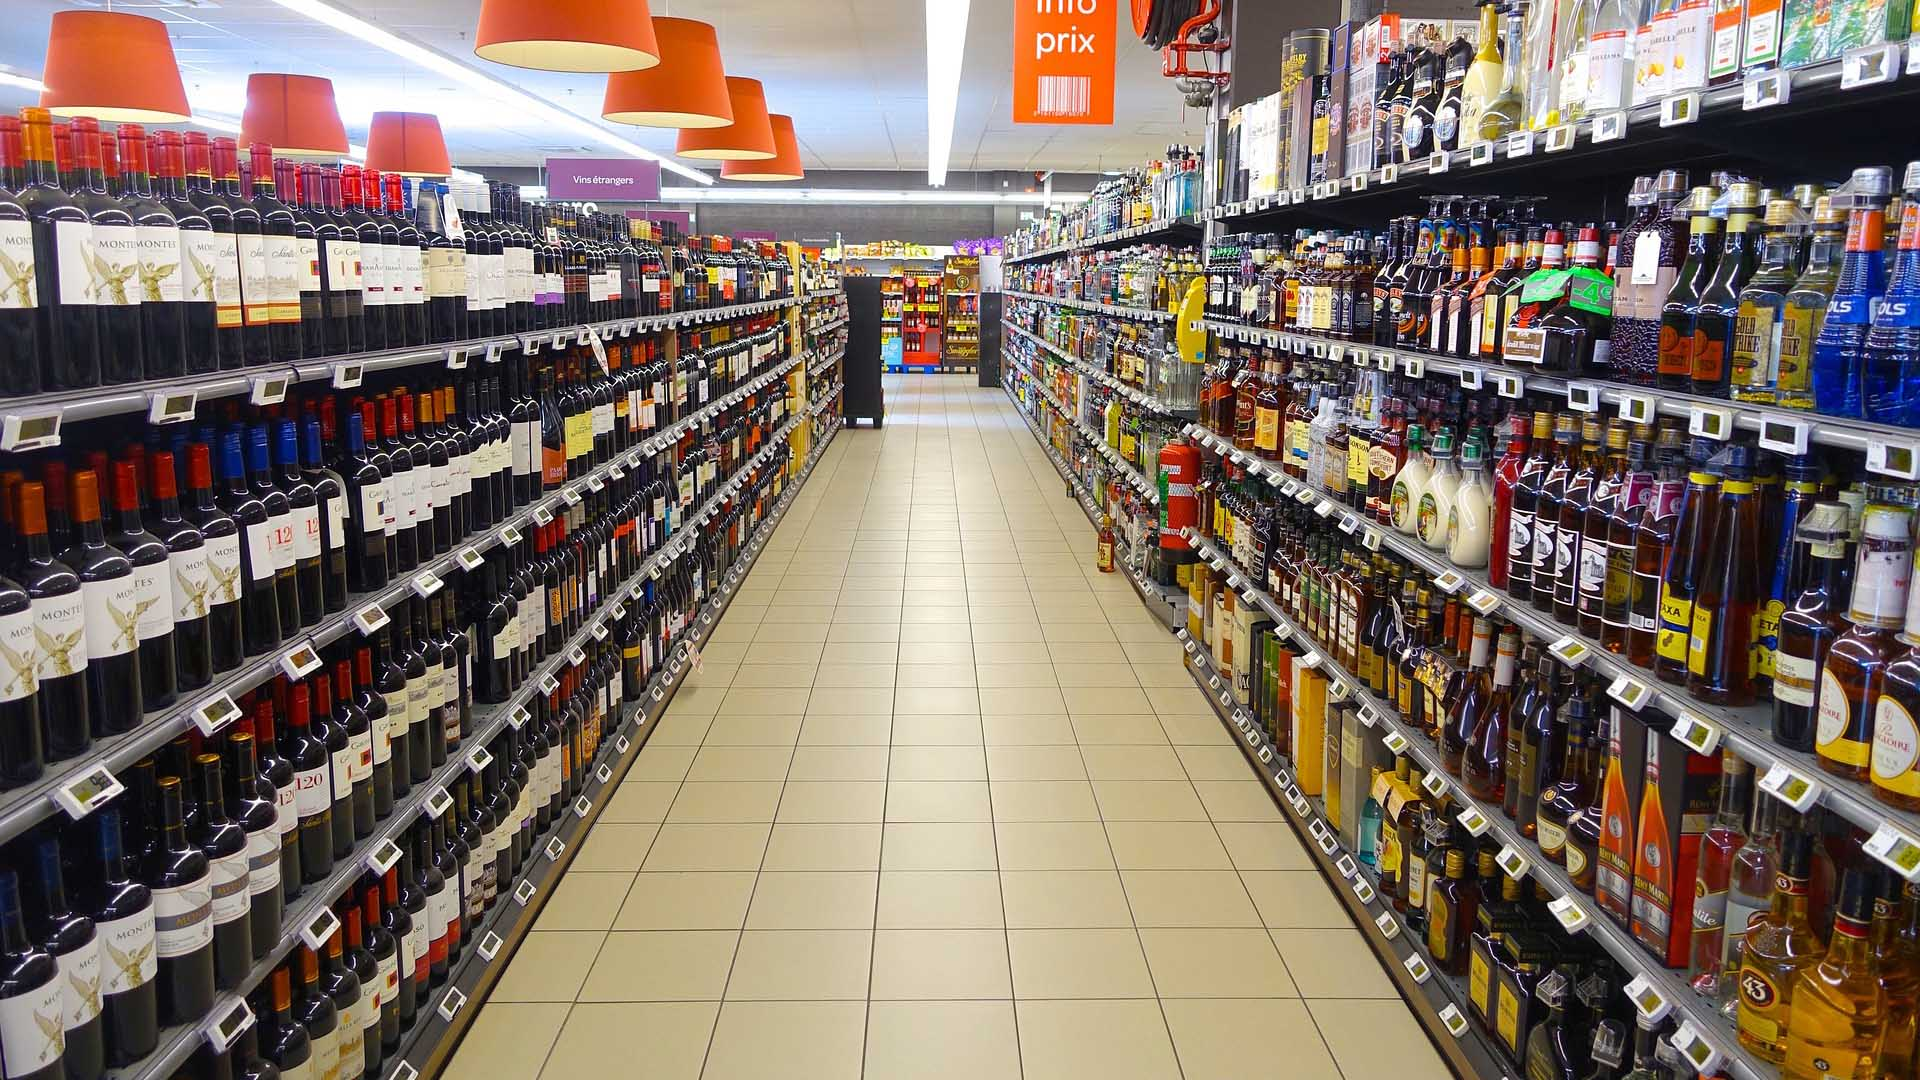 A quarter of alcohol is illicit in emerging markets; report